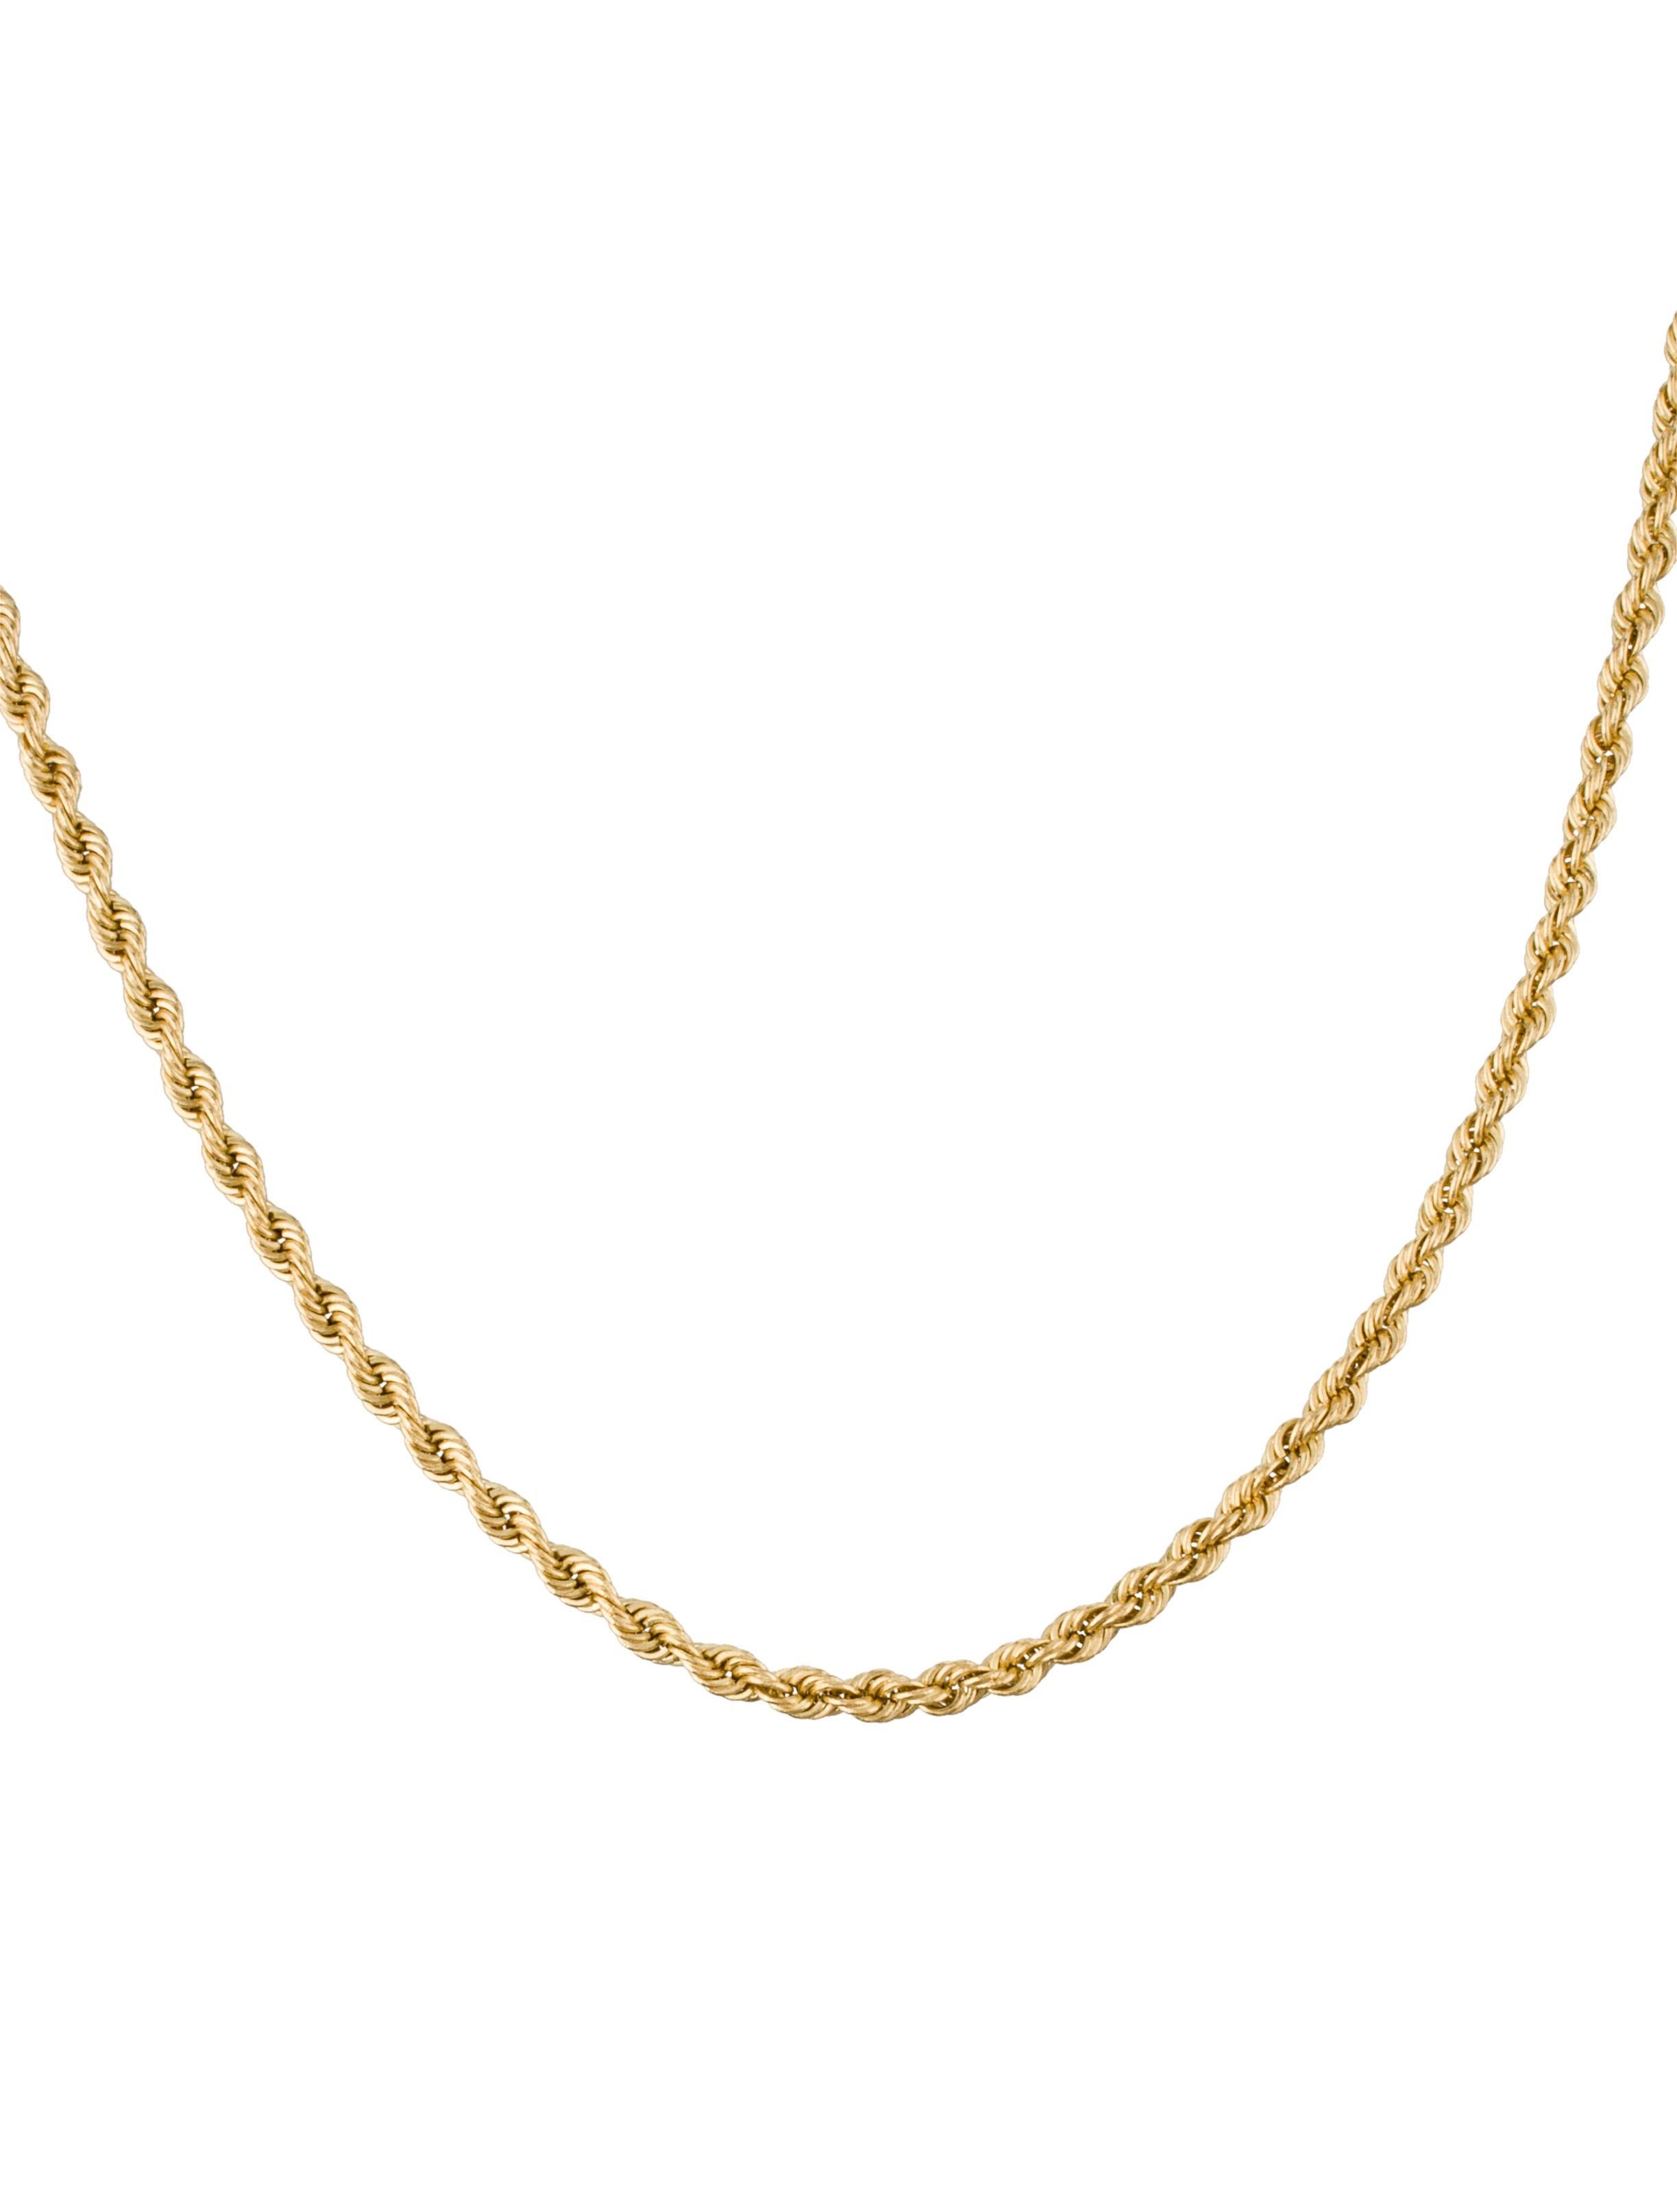 14k gold twist rope chain necklace necklaces fjn24390